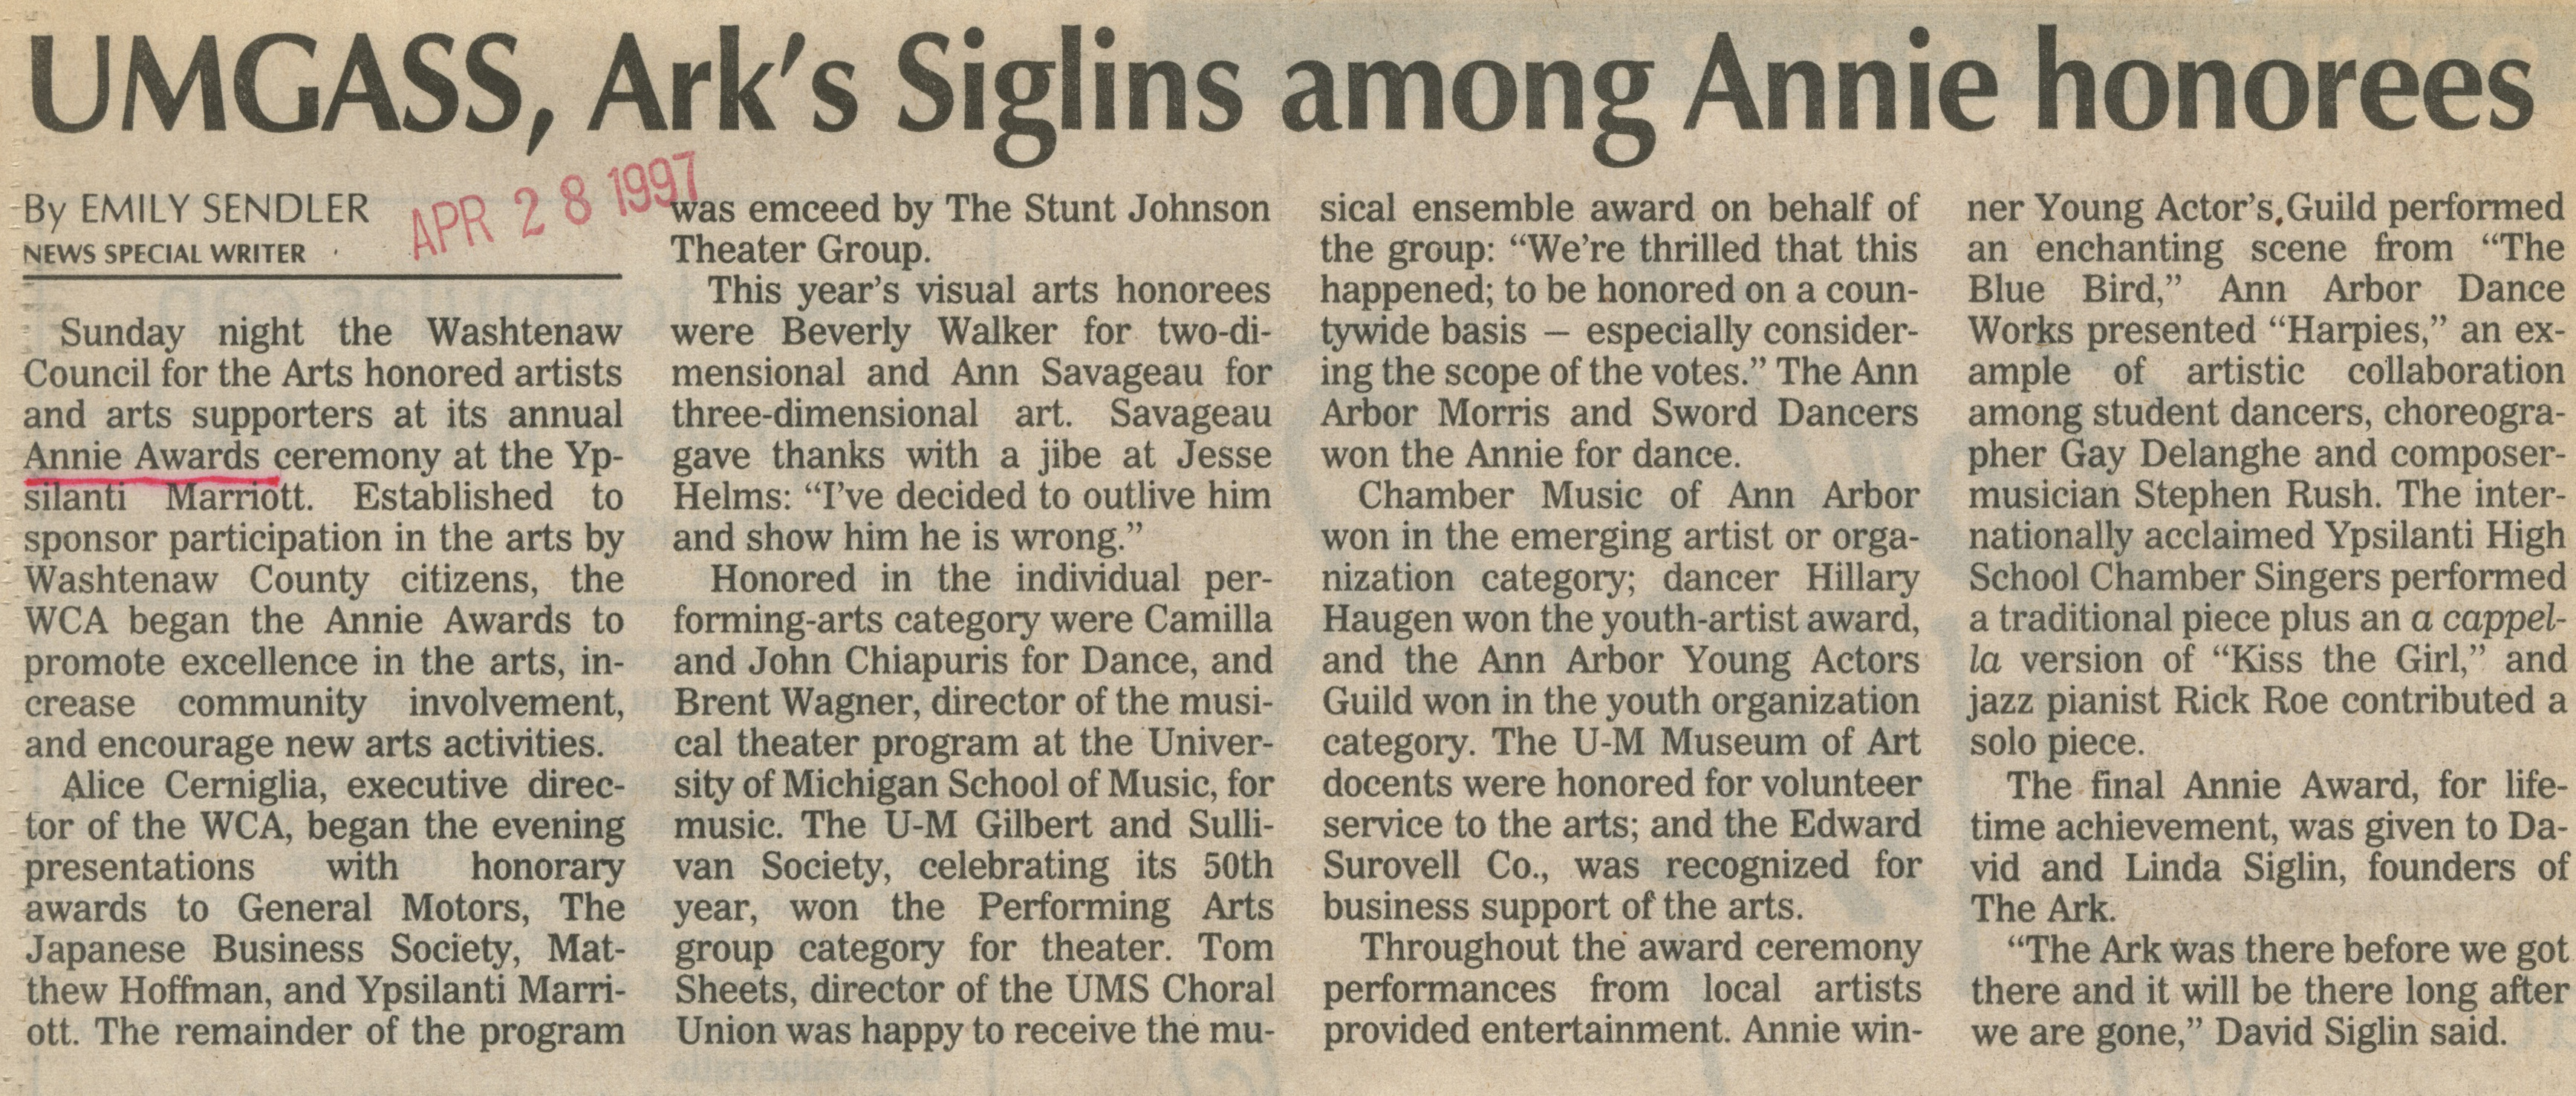 UMGASS, Ark's Siglins among Annie Honorees image